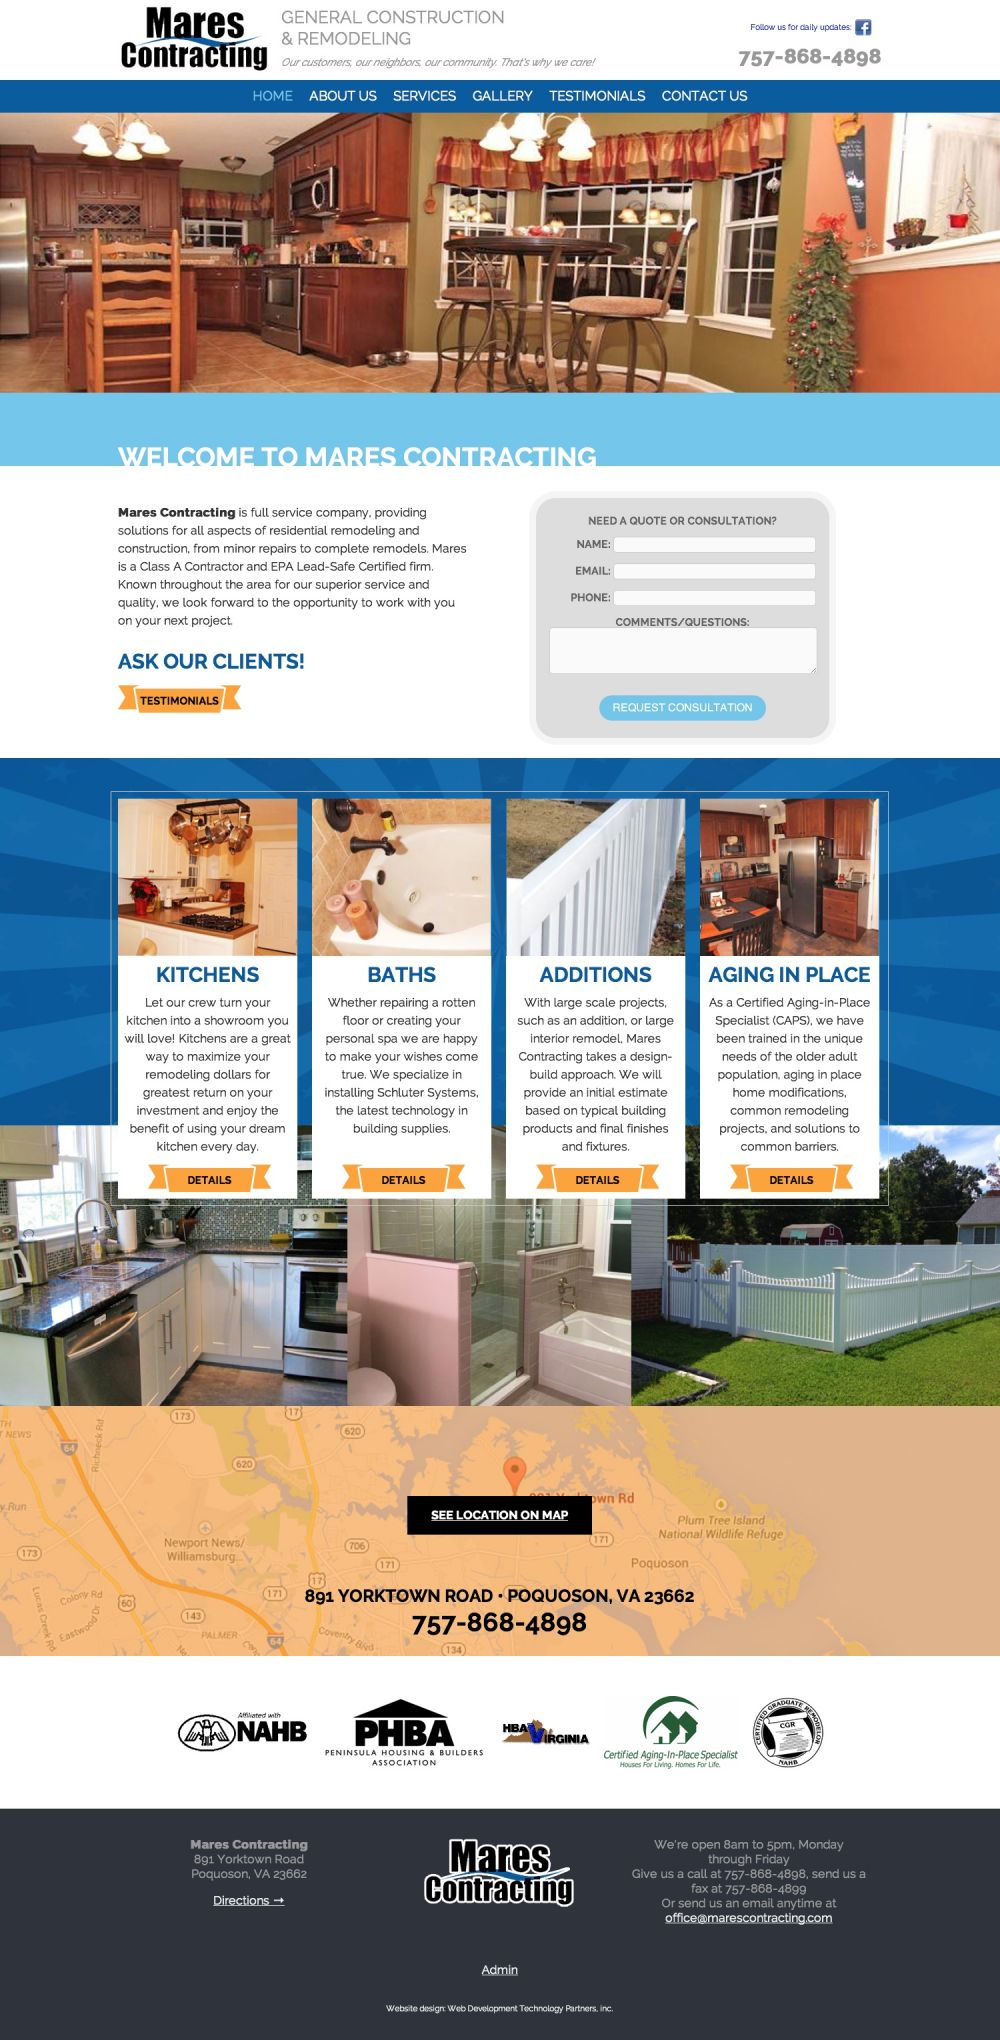 Mares Contracting